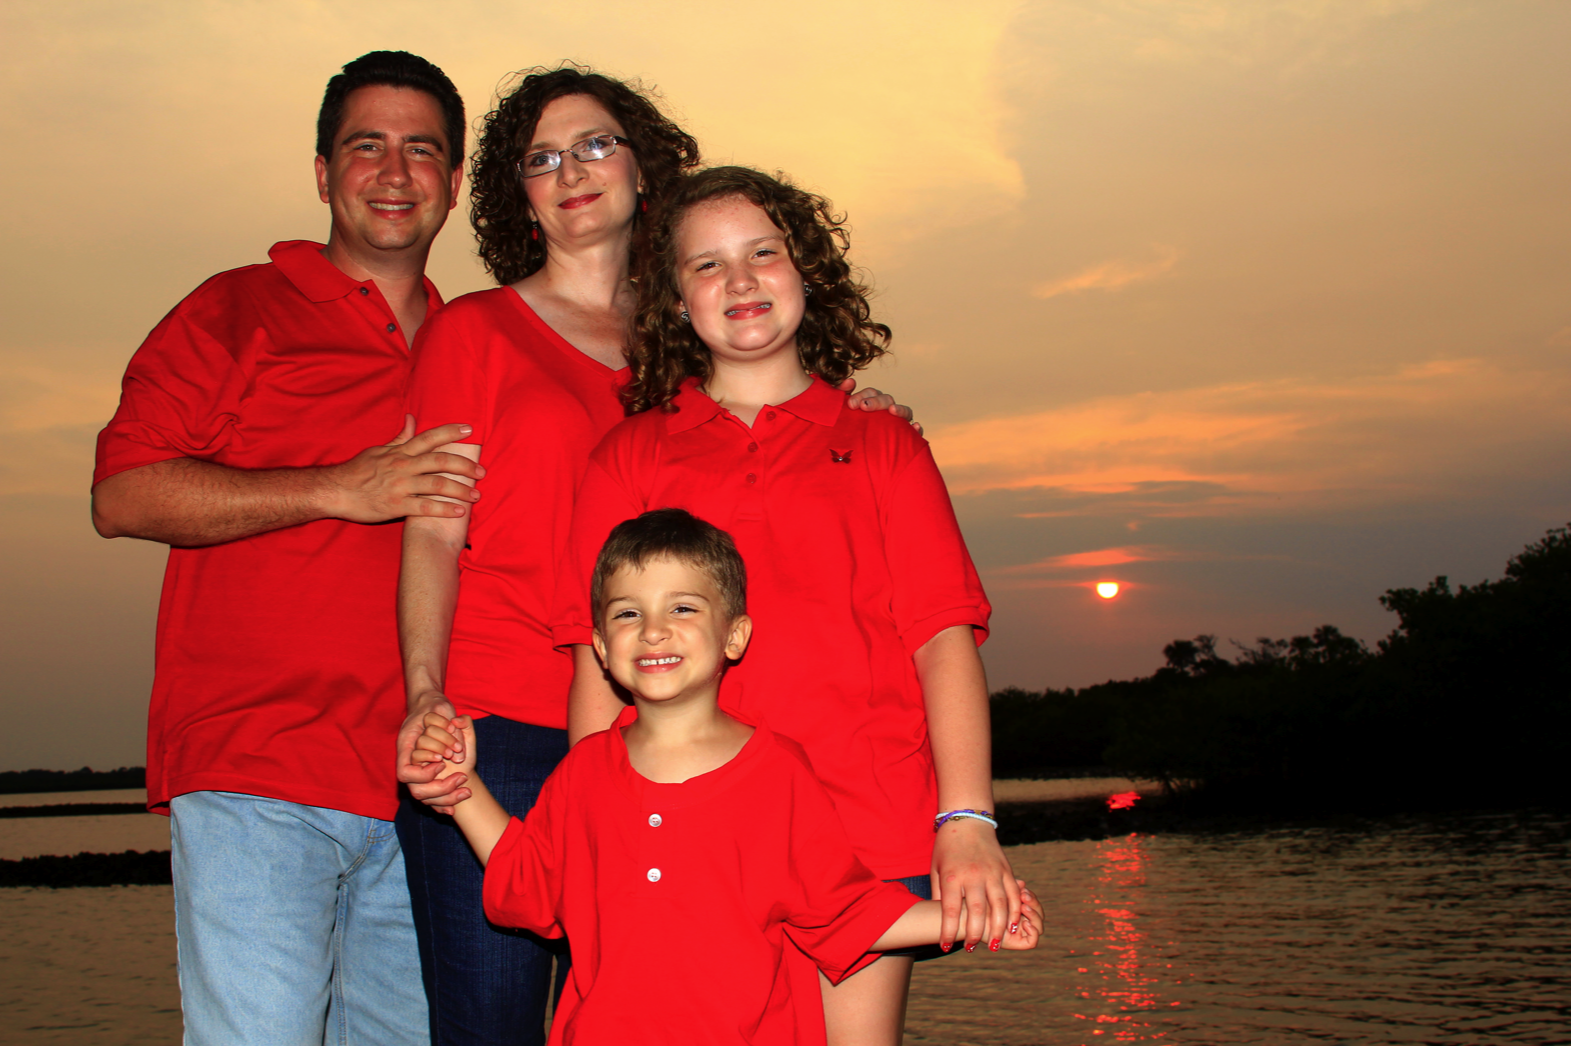 Sunset Family Photos